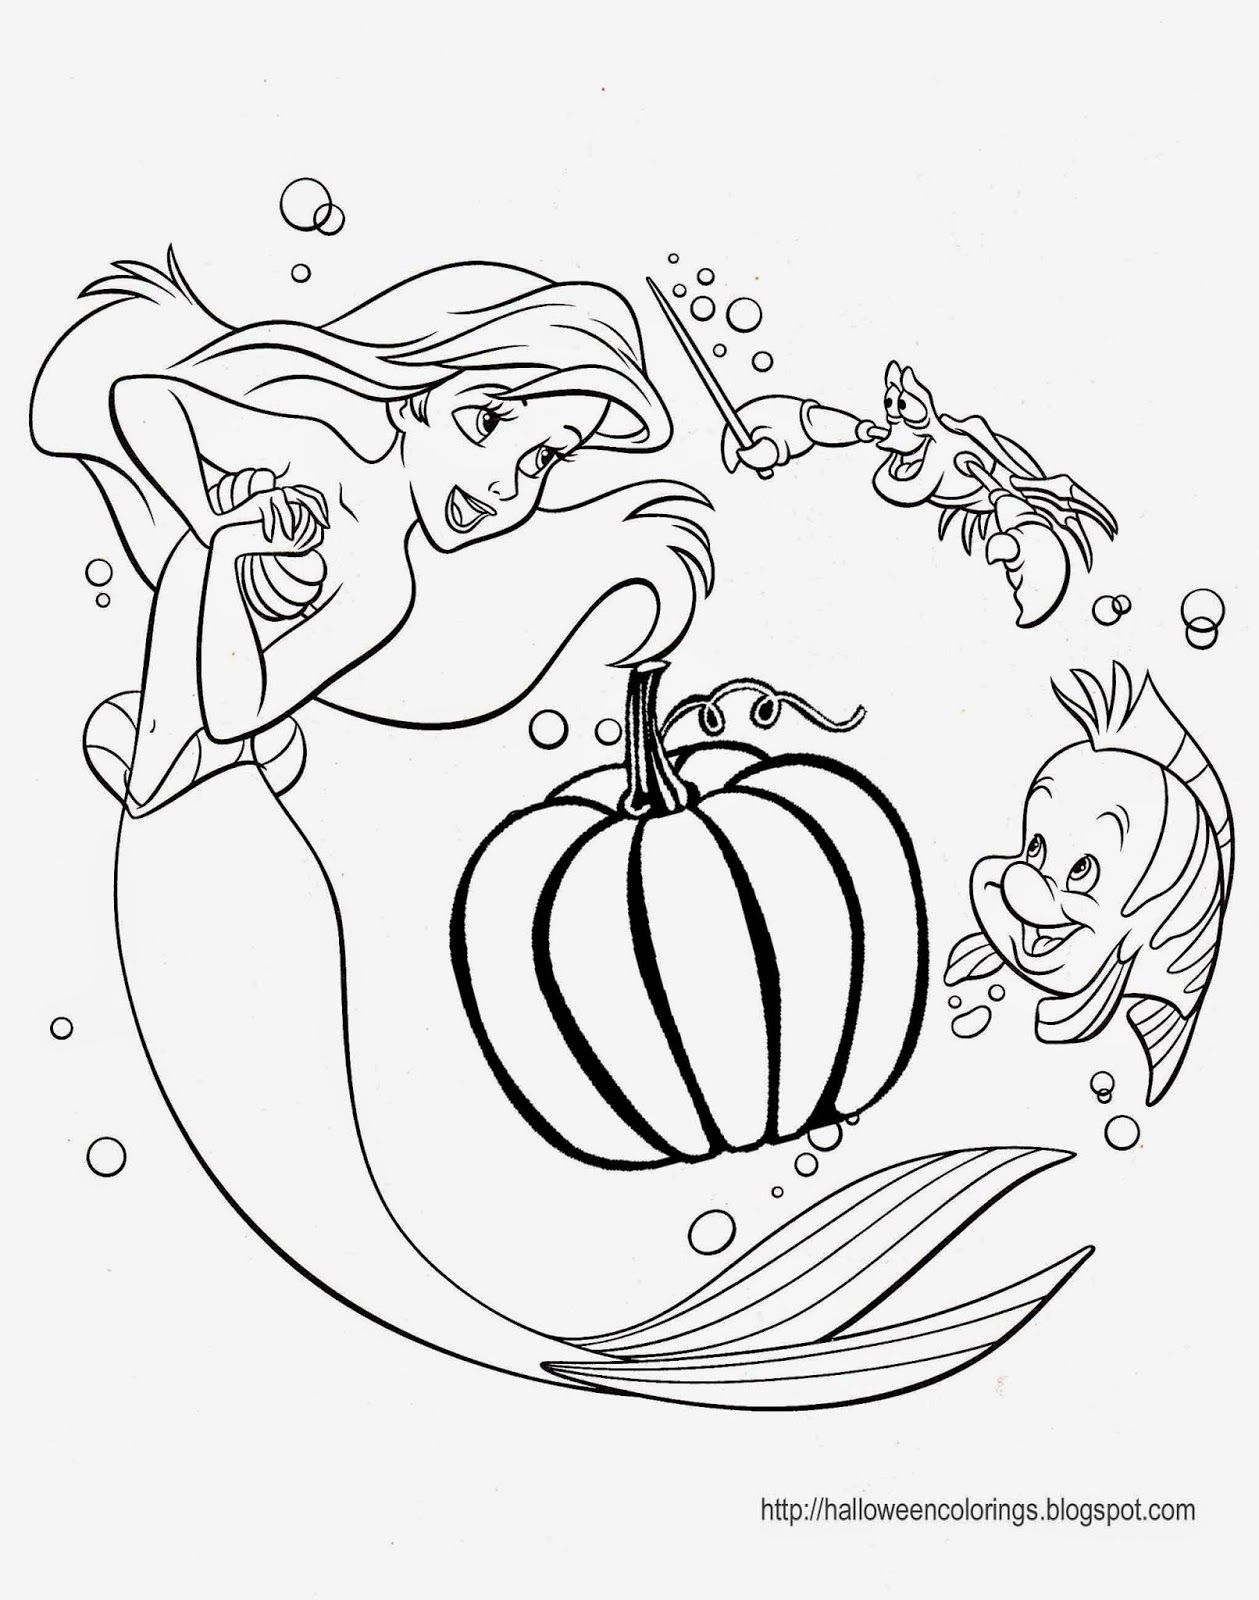 Coloring Pages Disney Walt Princess Ariel Sebastian Flounder680 Copy 1259x1600